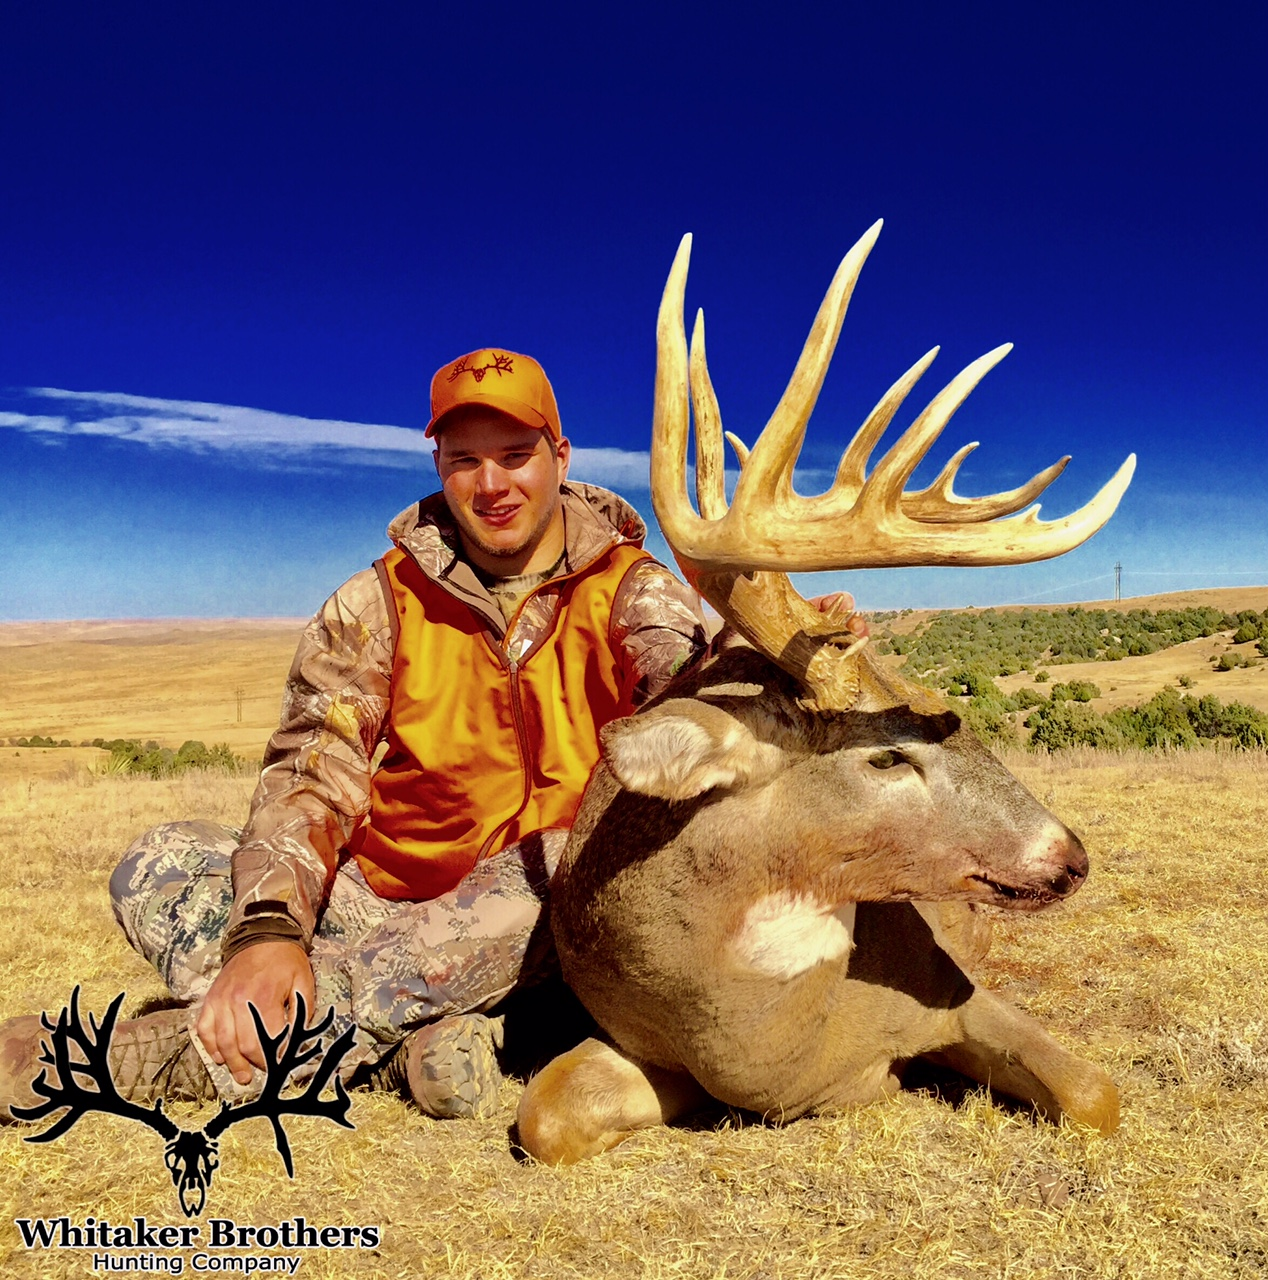 Colorado Hunting License: Whitaker Brothers Hunting Company